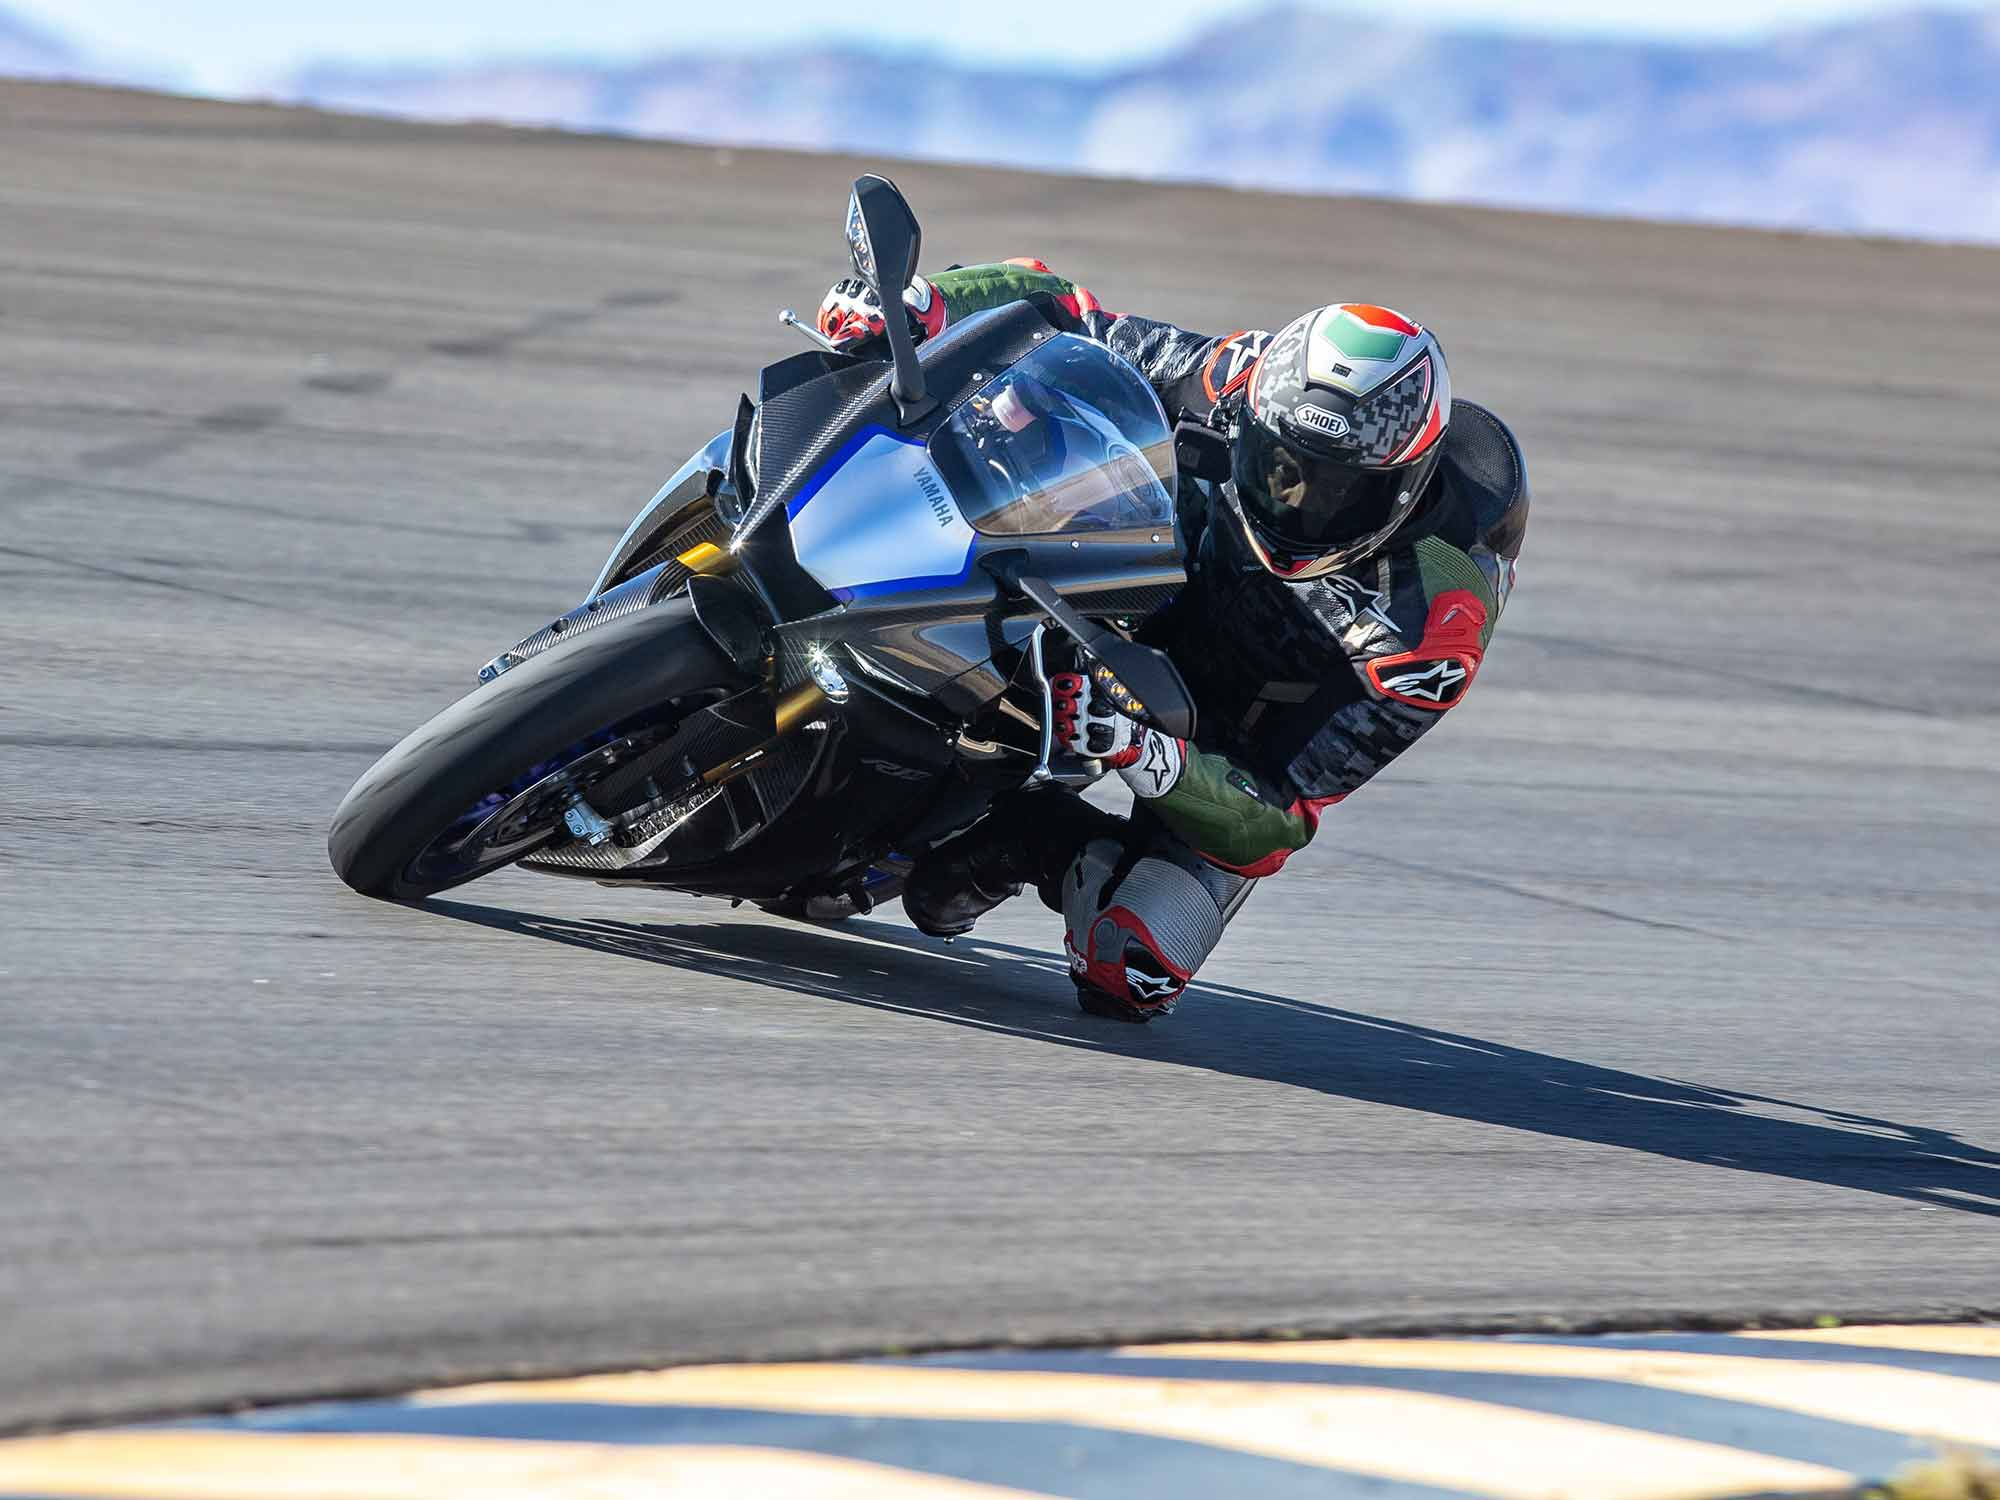 Yamaha's YZF-R1M is a hoot to ride, especially at the racetrack where its advanced rider aids and 165-horsepower I4 engine make for the ultimate play date.